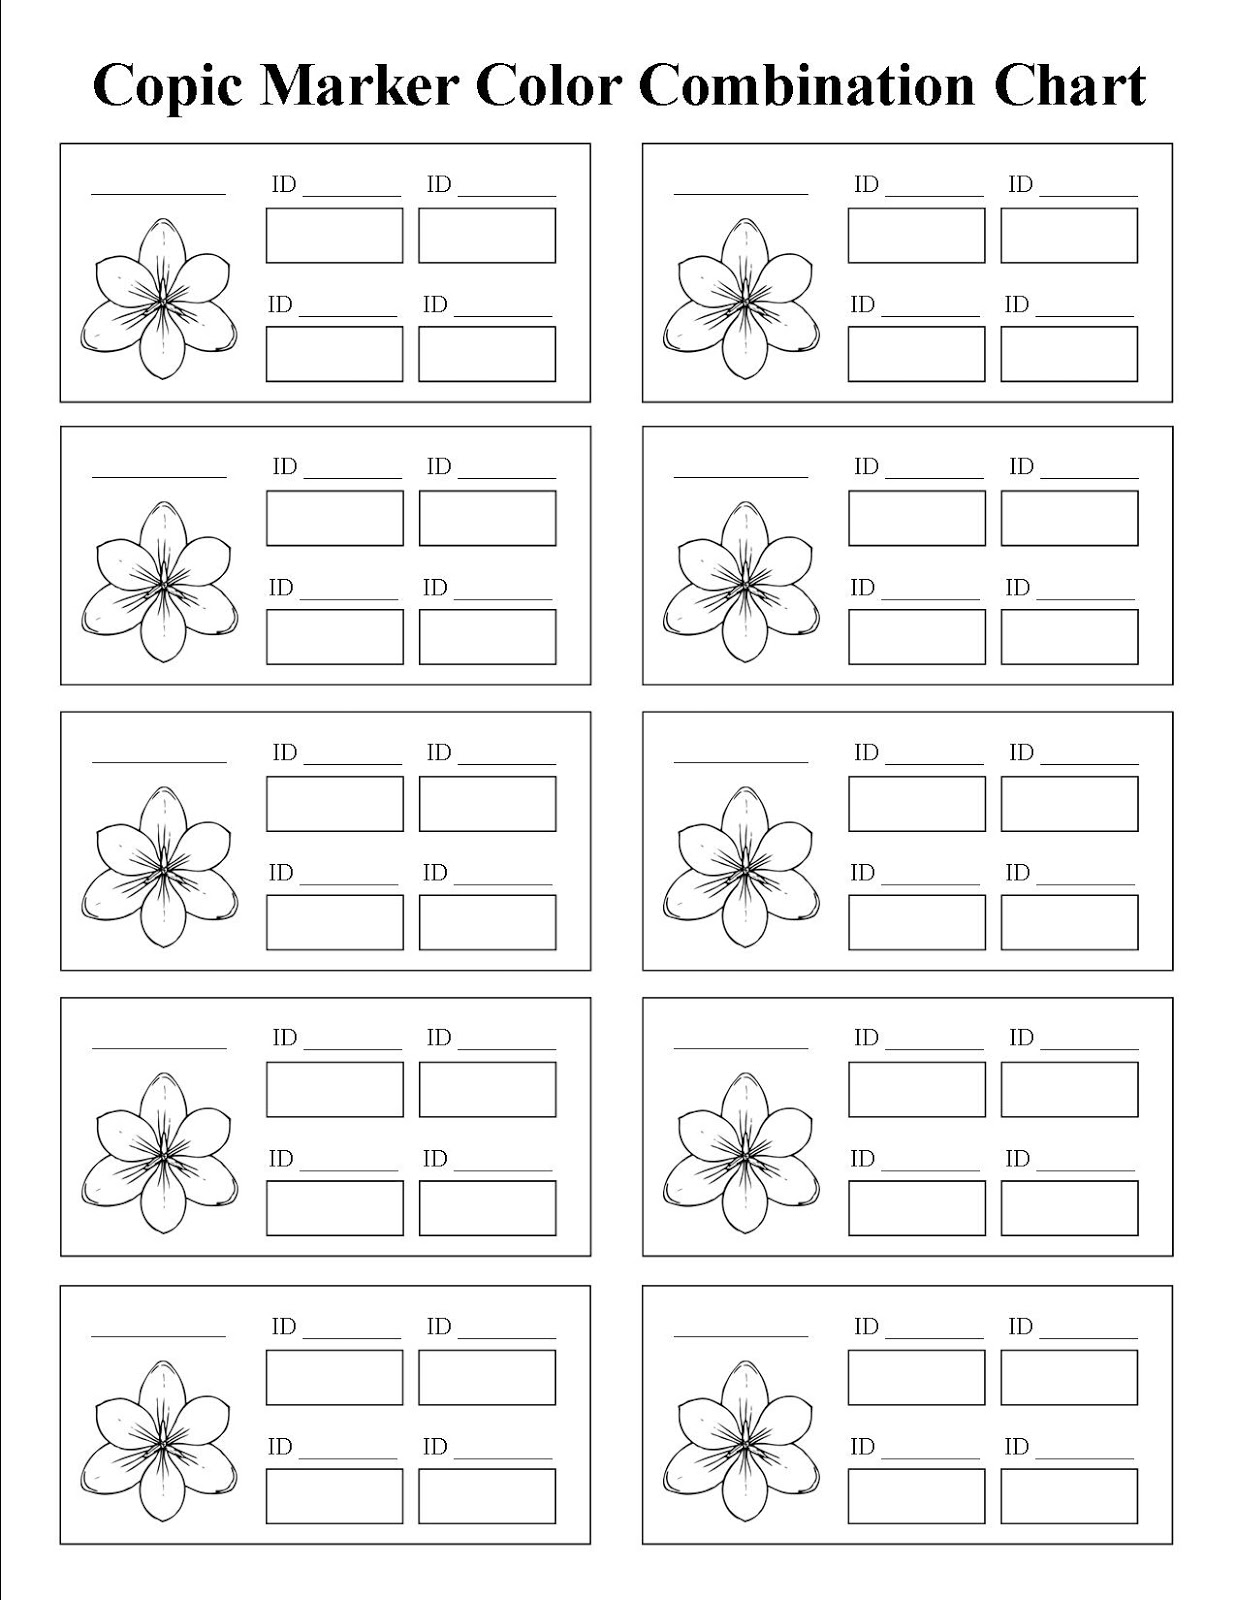 Midnight pixy designs resources for Marker coloring page